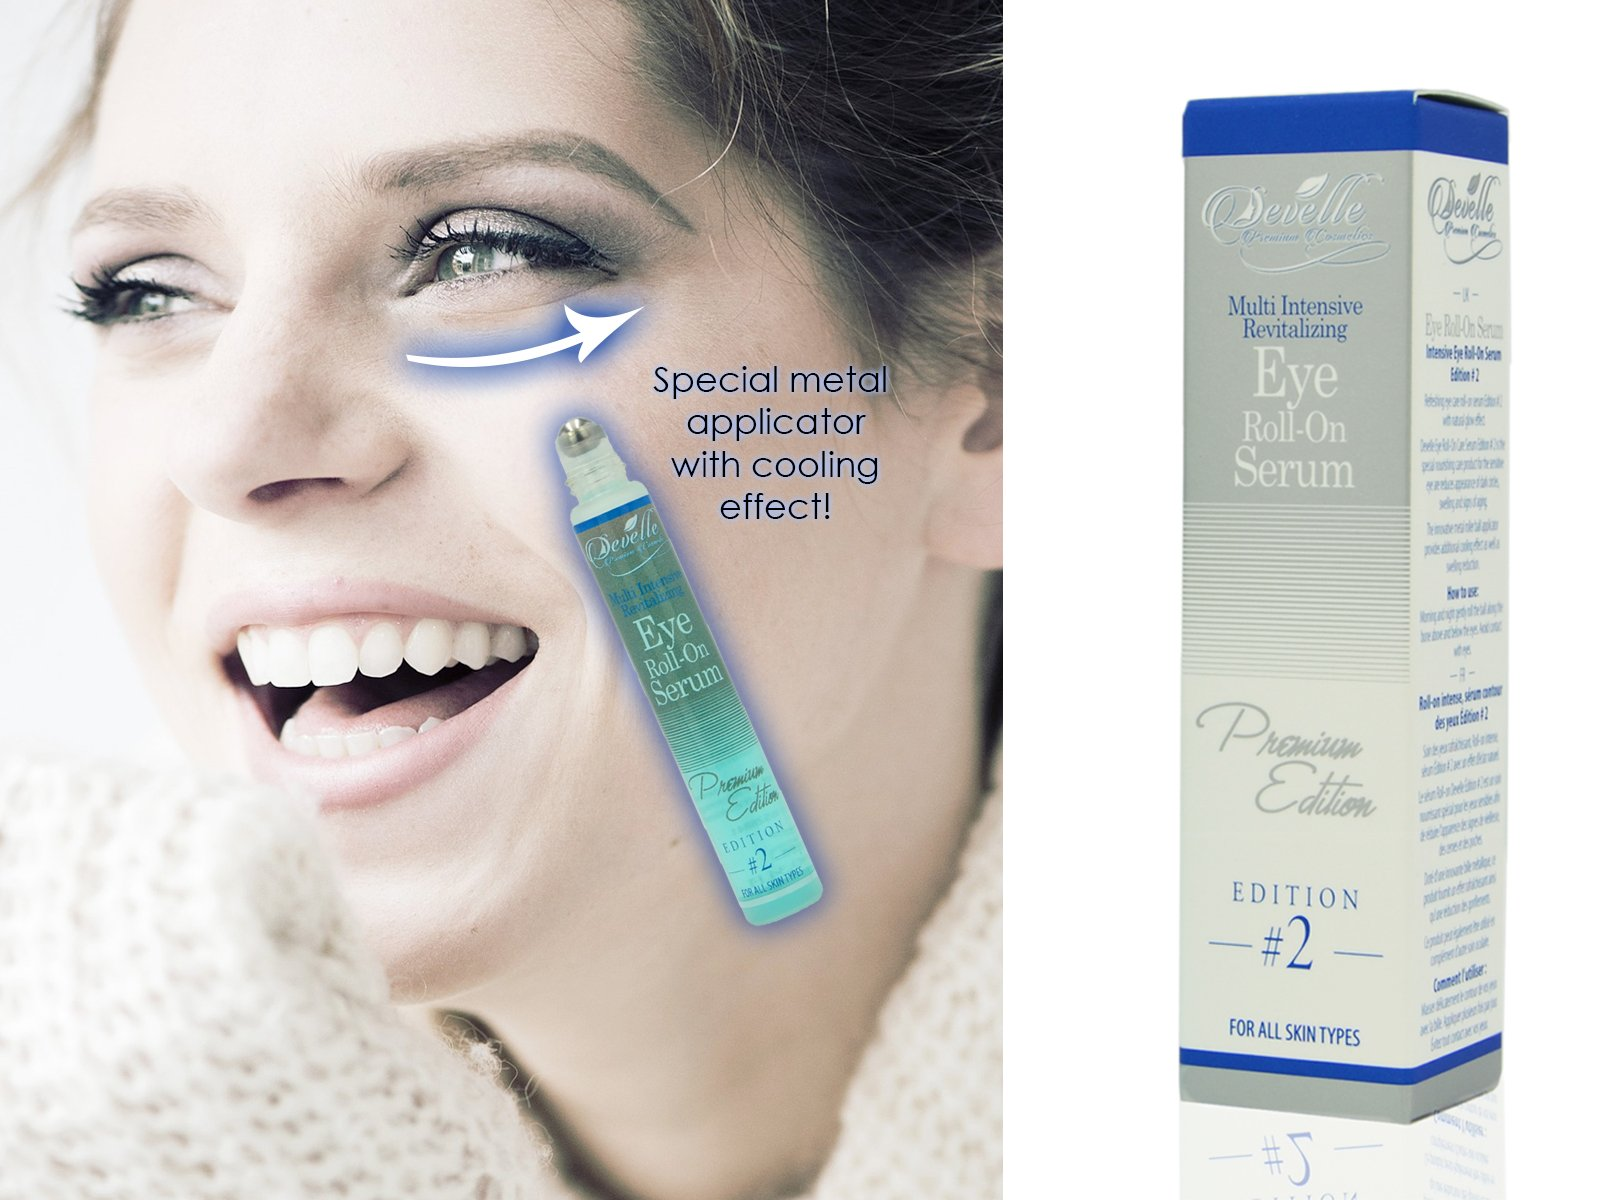 Develle Eye Roll-On | 10 ml bottle | Eye lotion | Eye serum |BLUE Premium Edition | Anti wrinkle eye serum